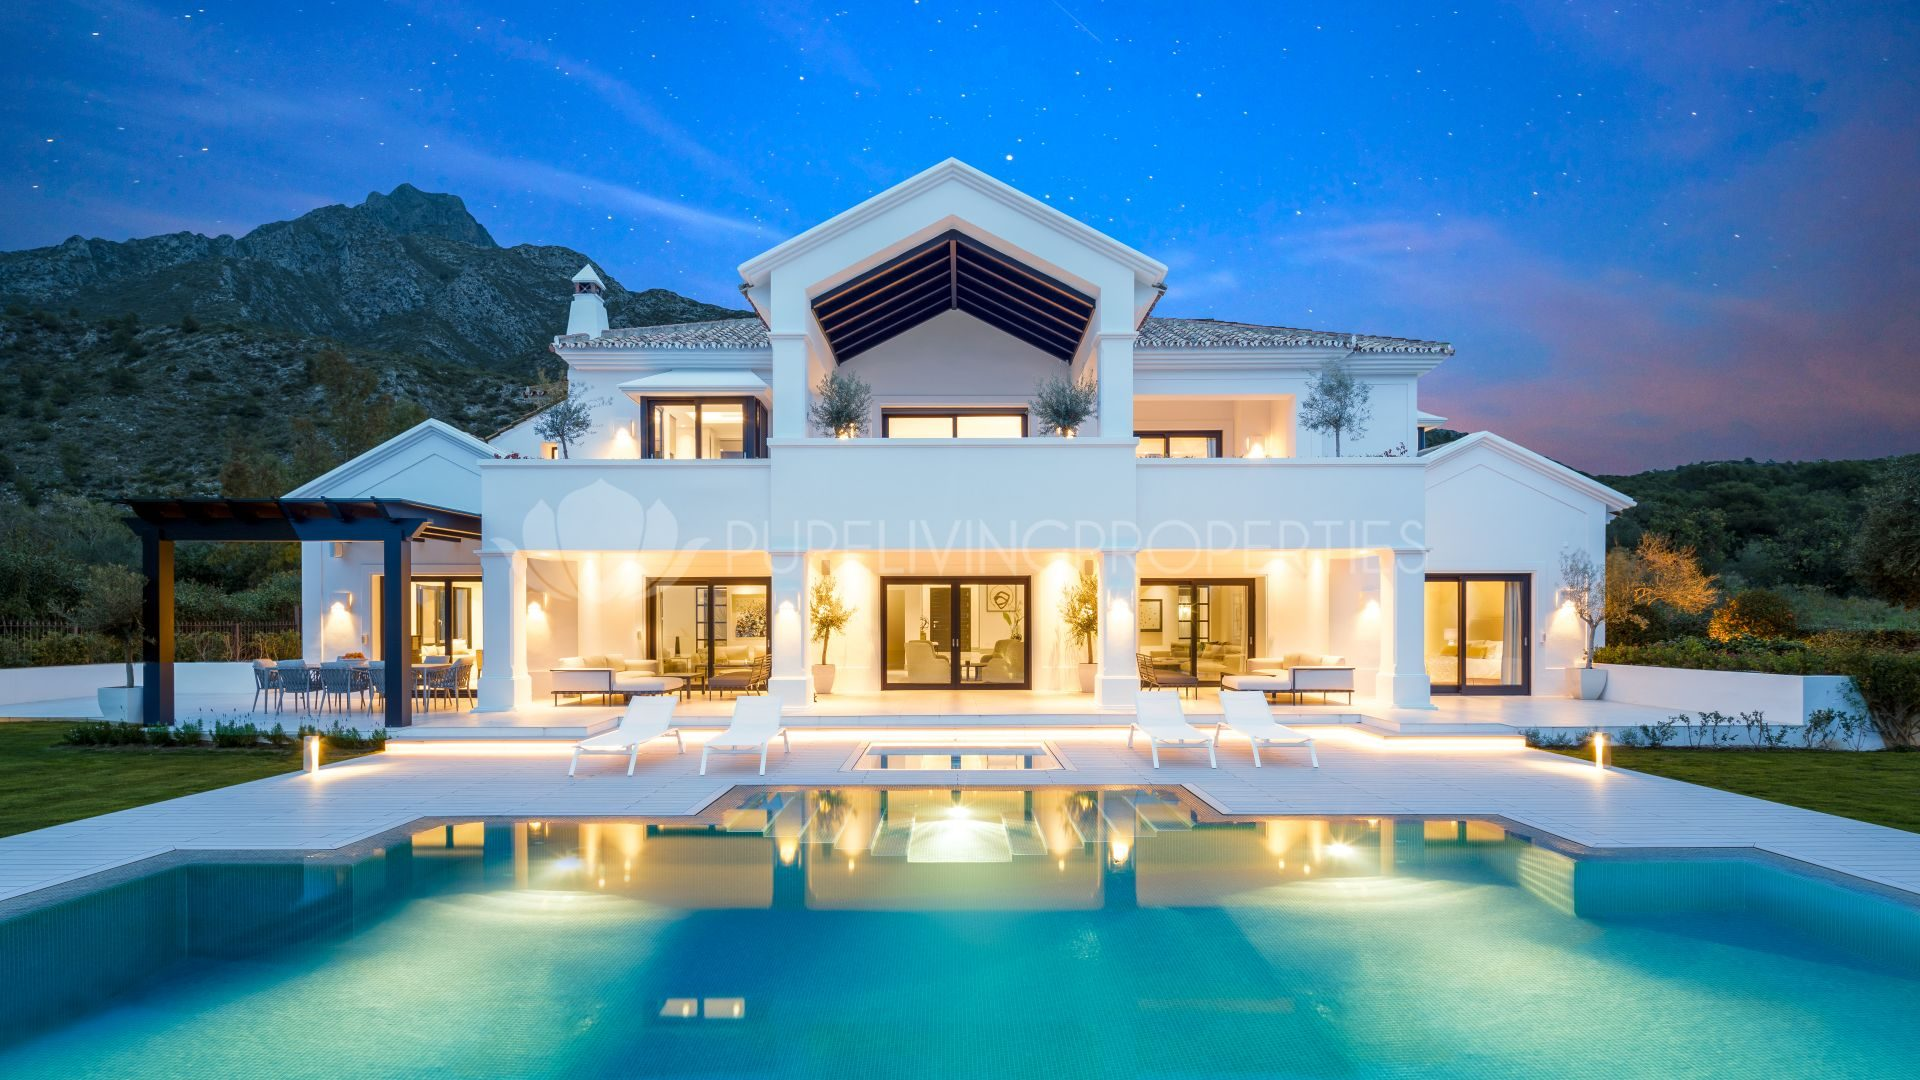 Looking for a Marbella property? – Search by lifestyle